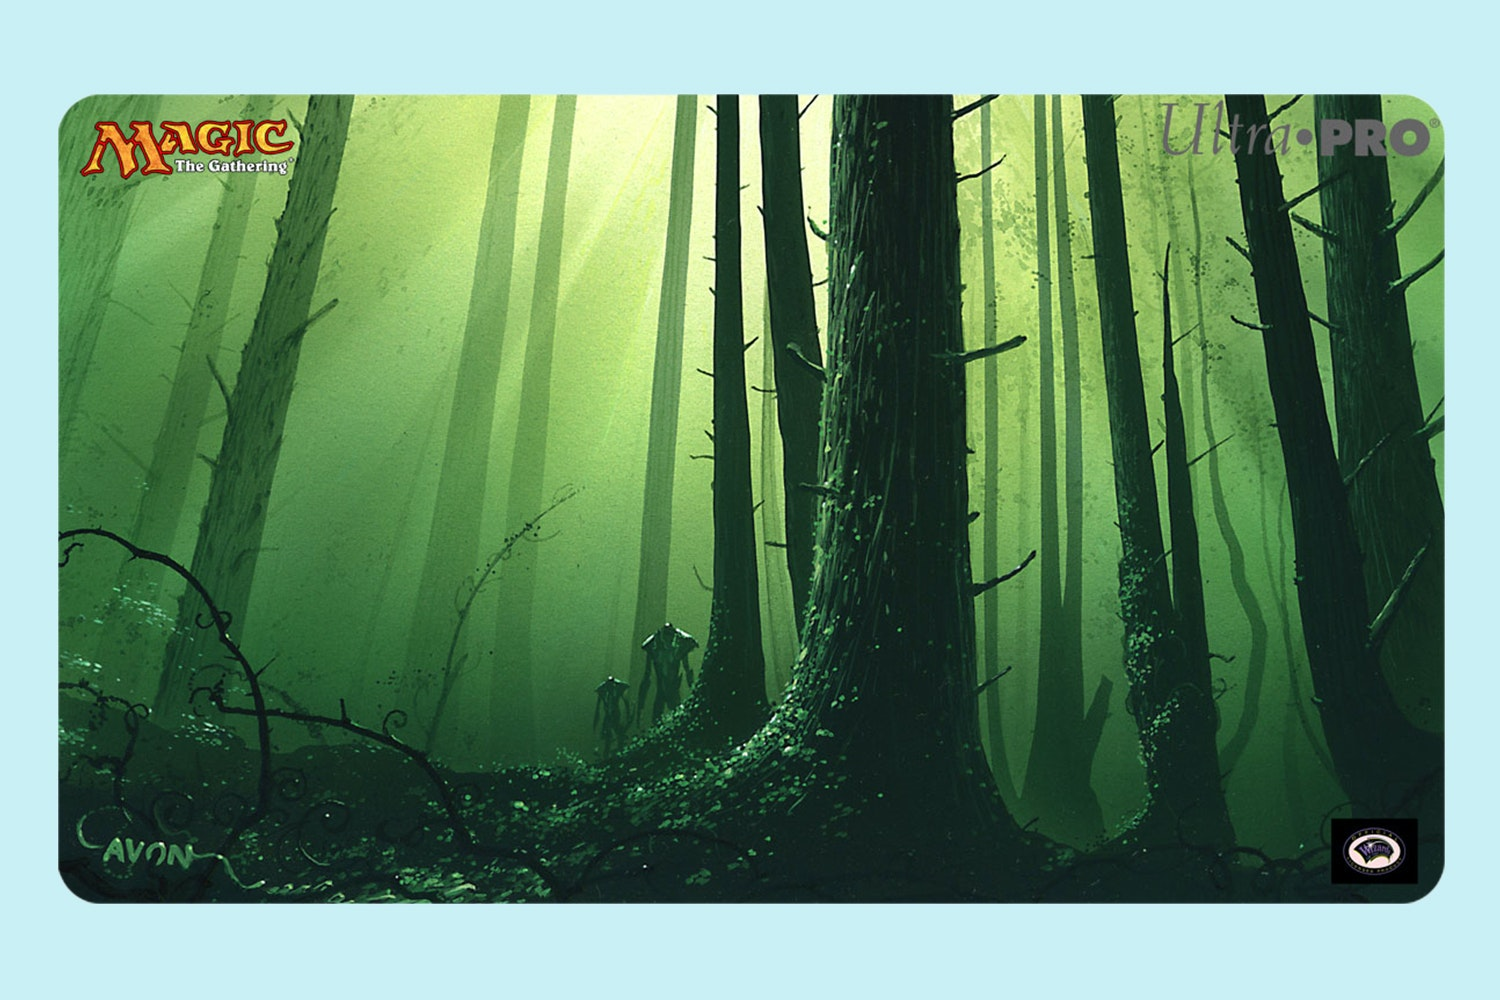 Limited-Edition MTG Playmat by John Avon